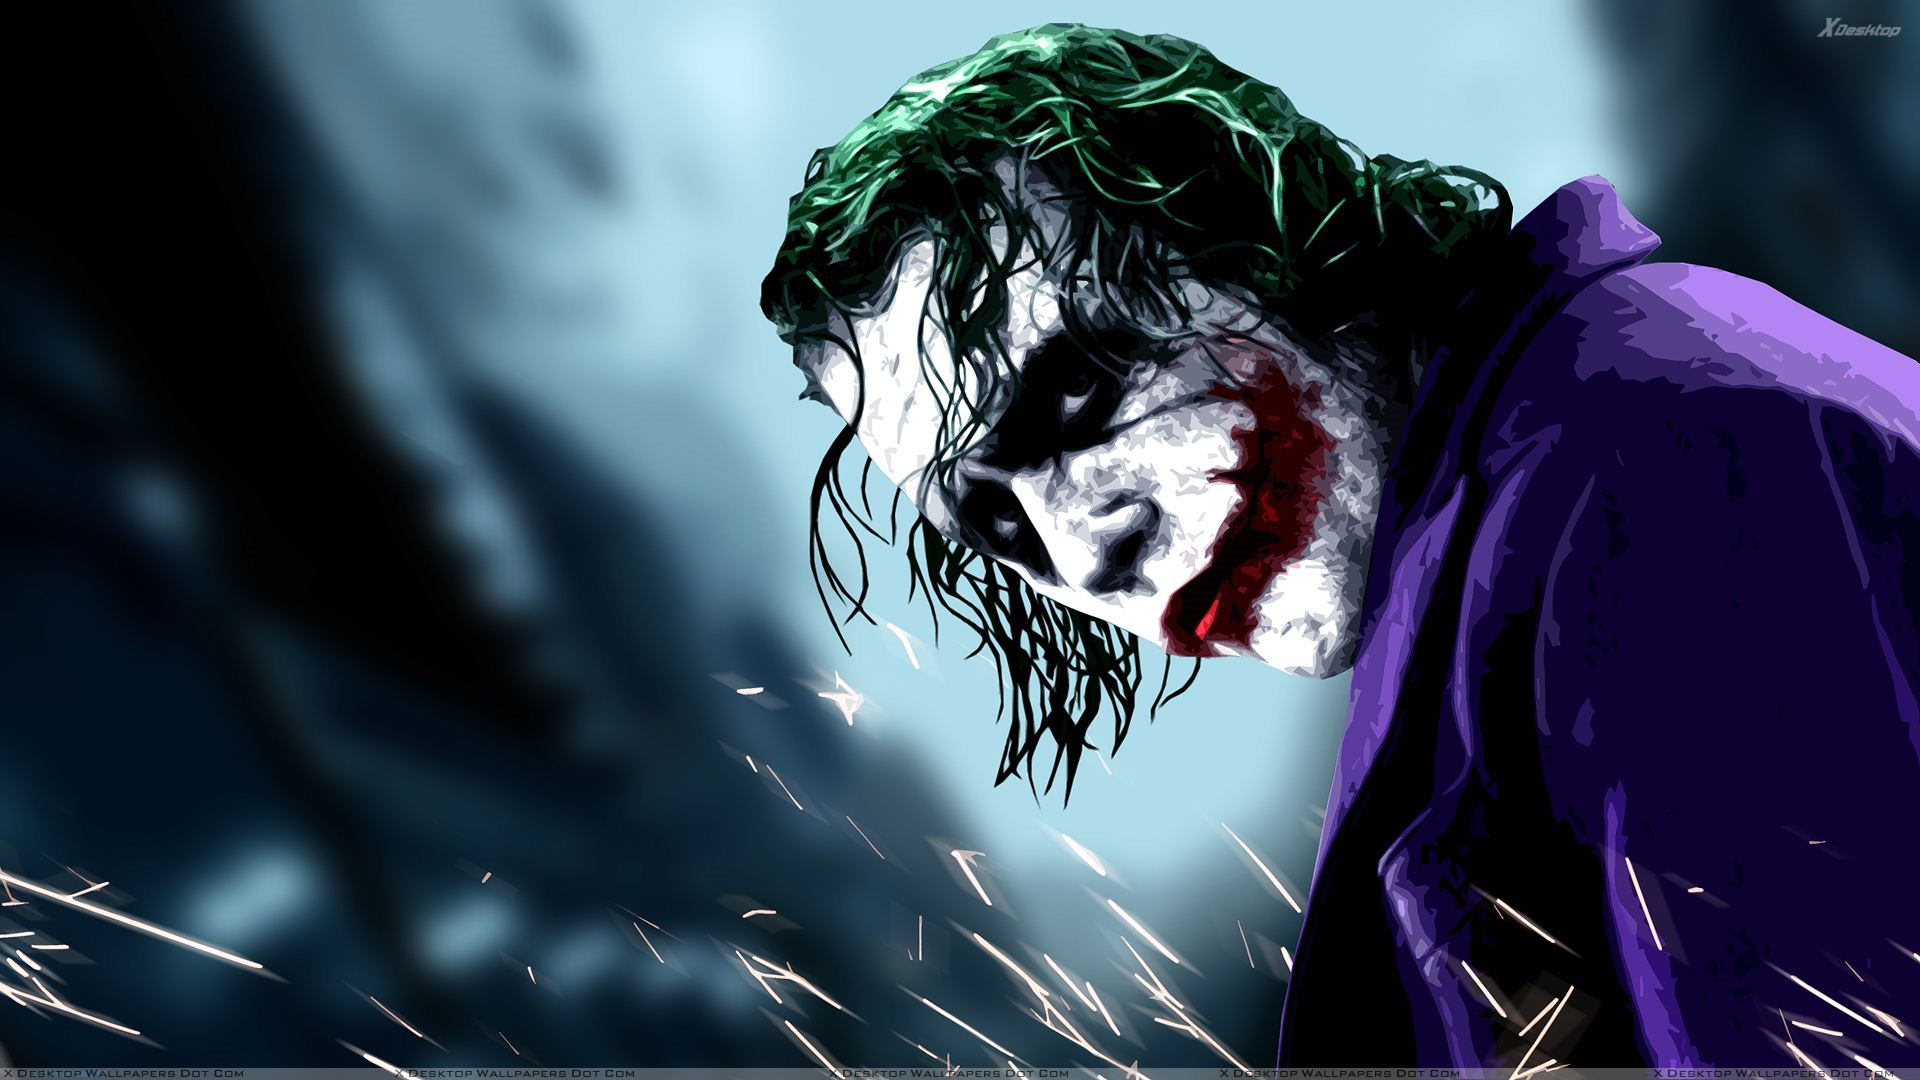 Joker Artistic Picture Wallpaper